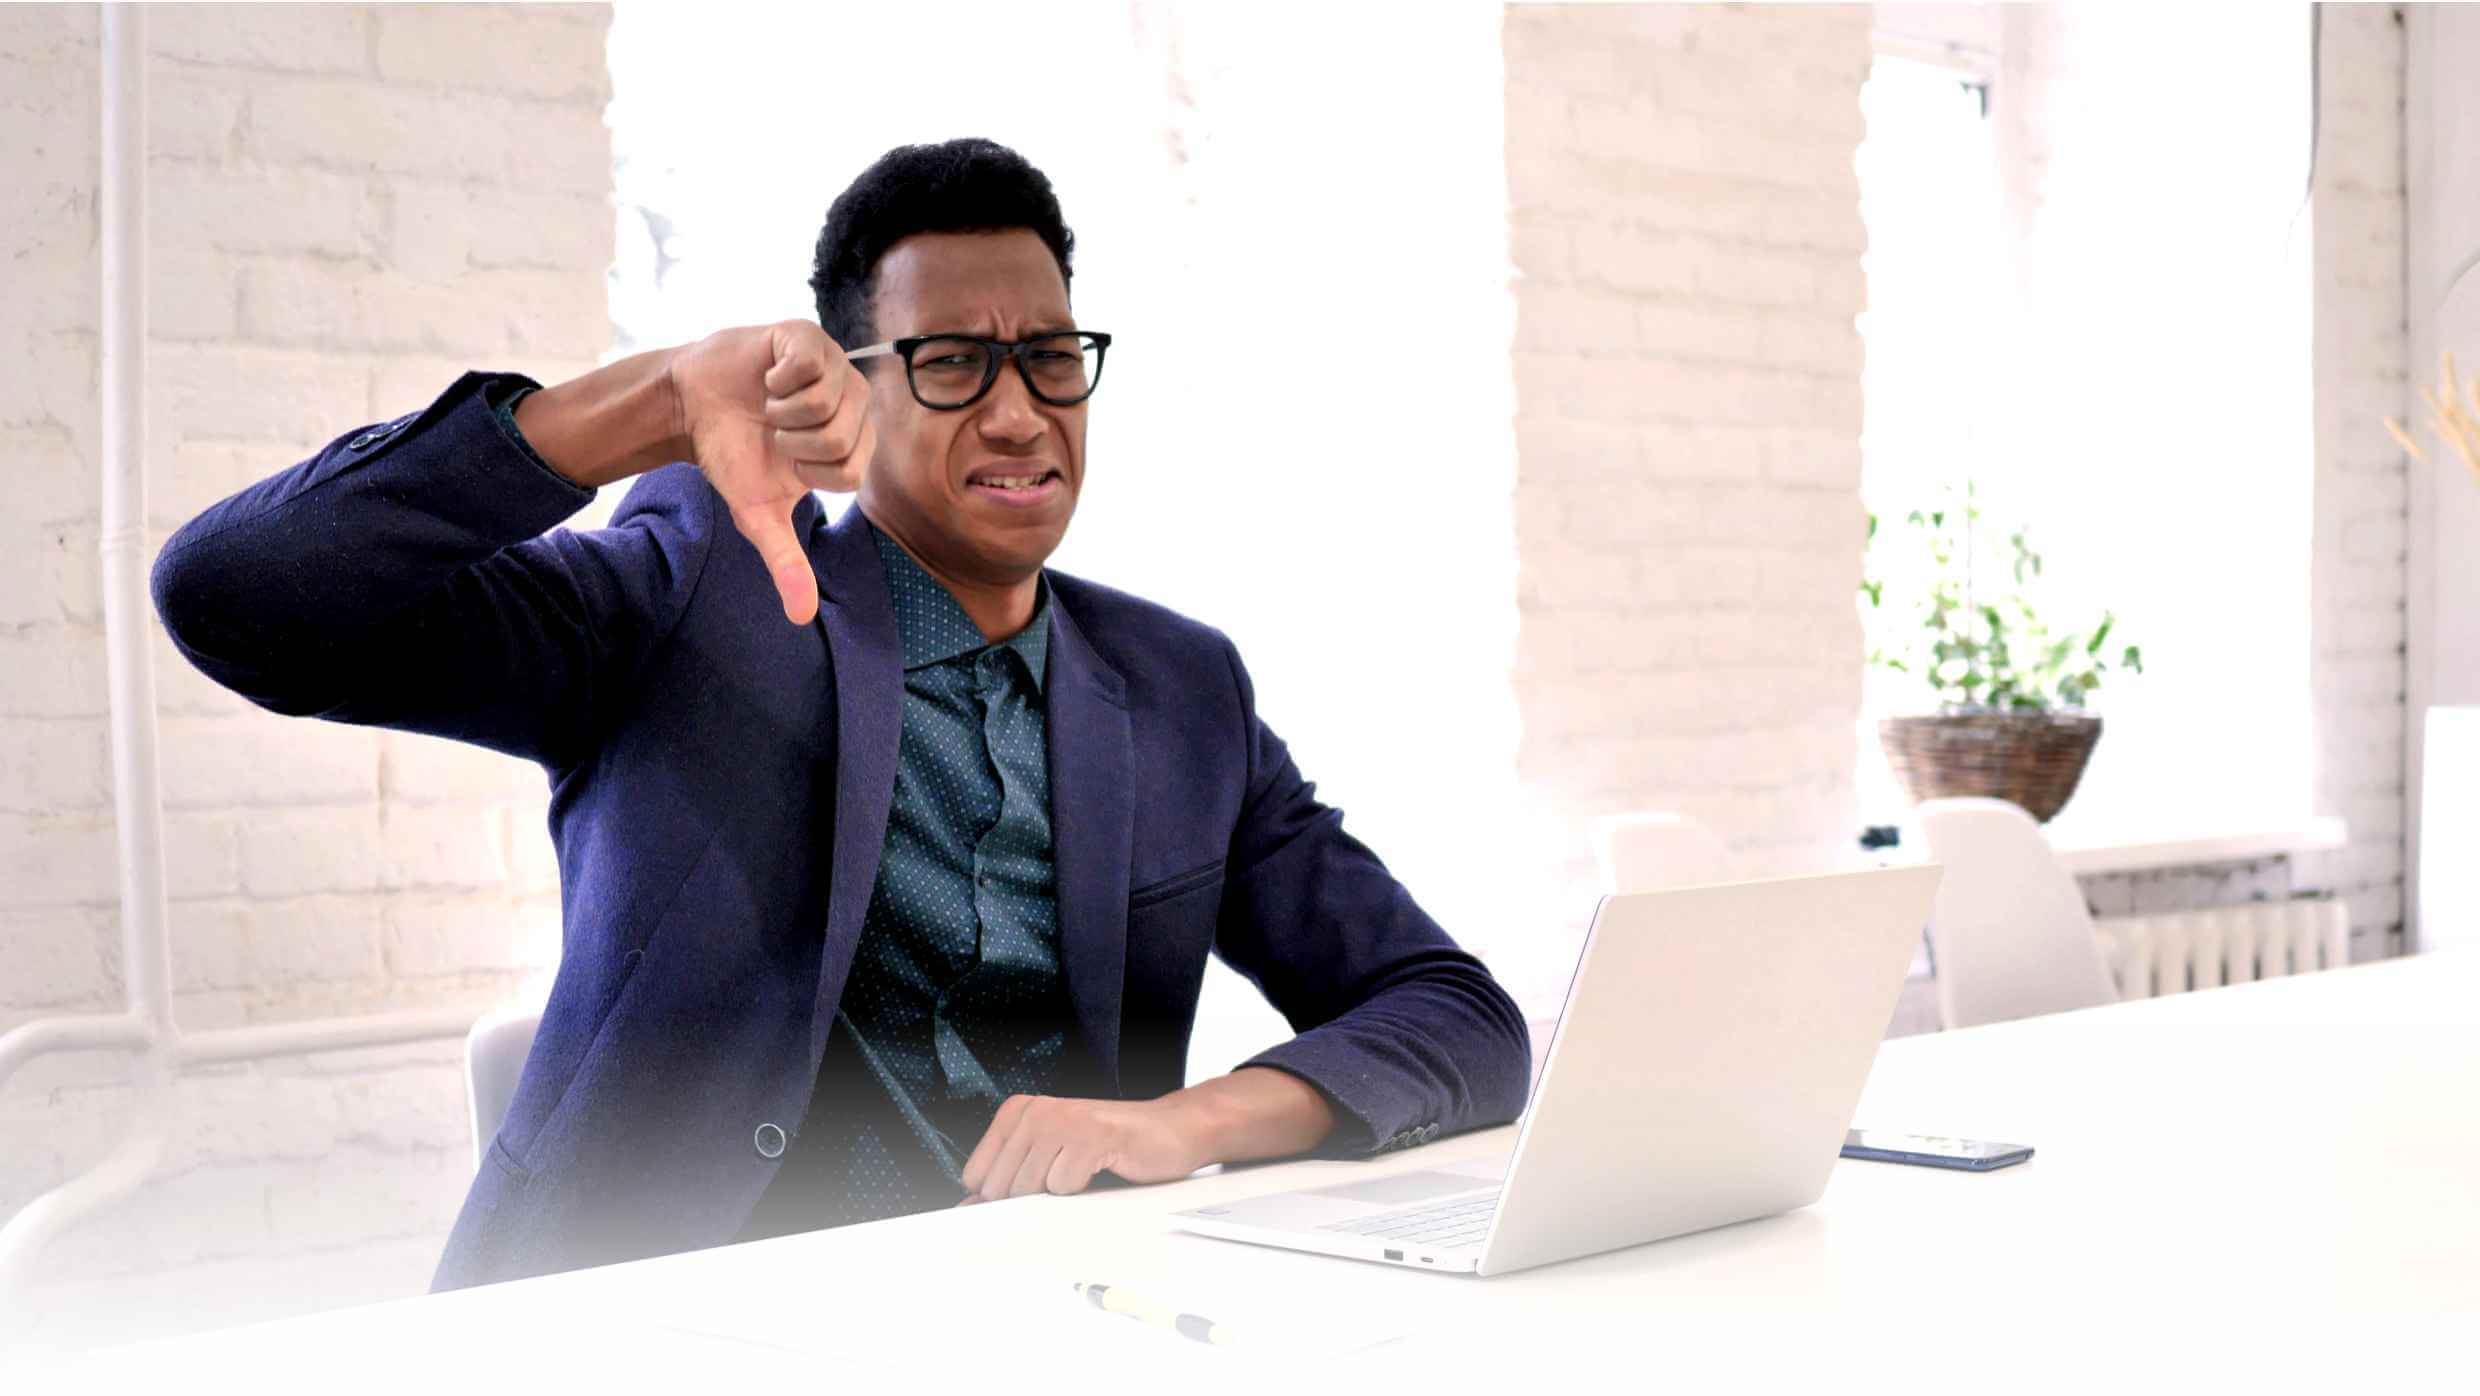 Things to avoid when starting a new job